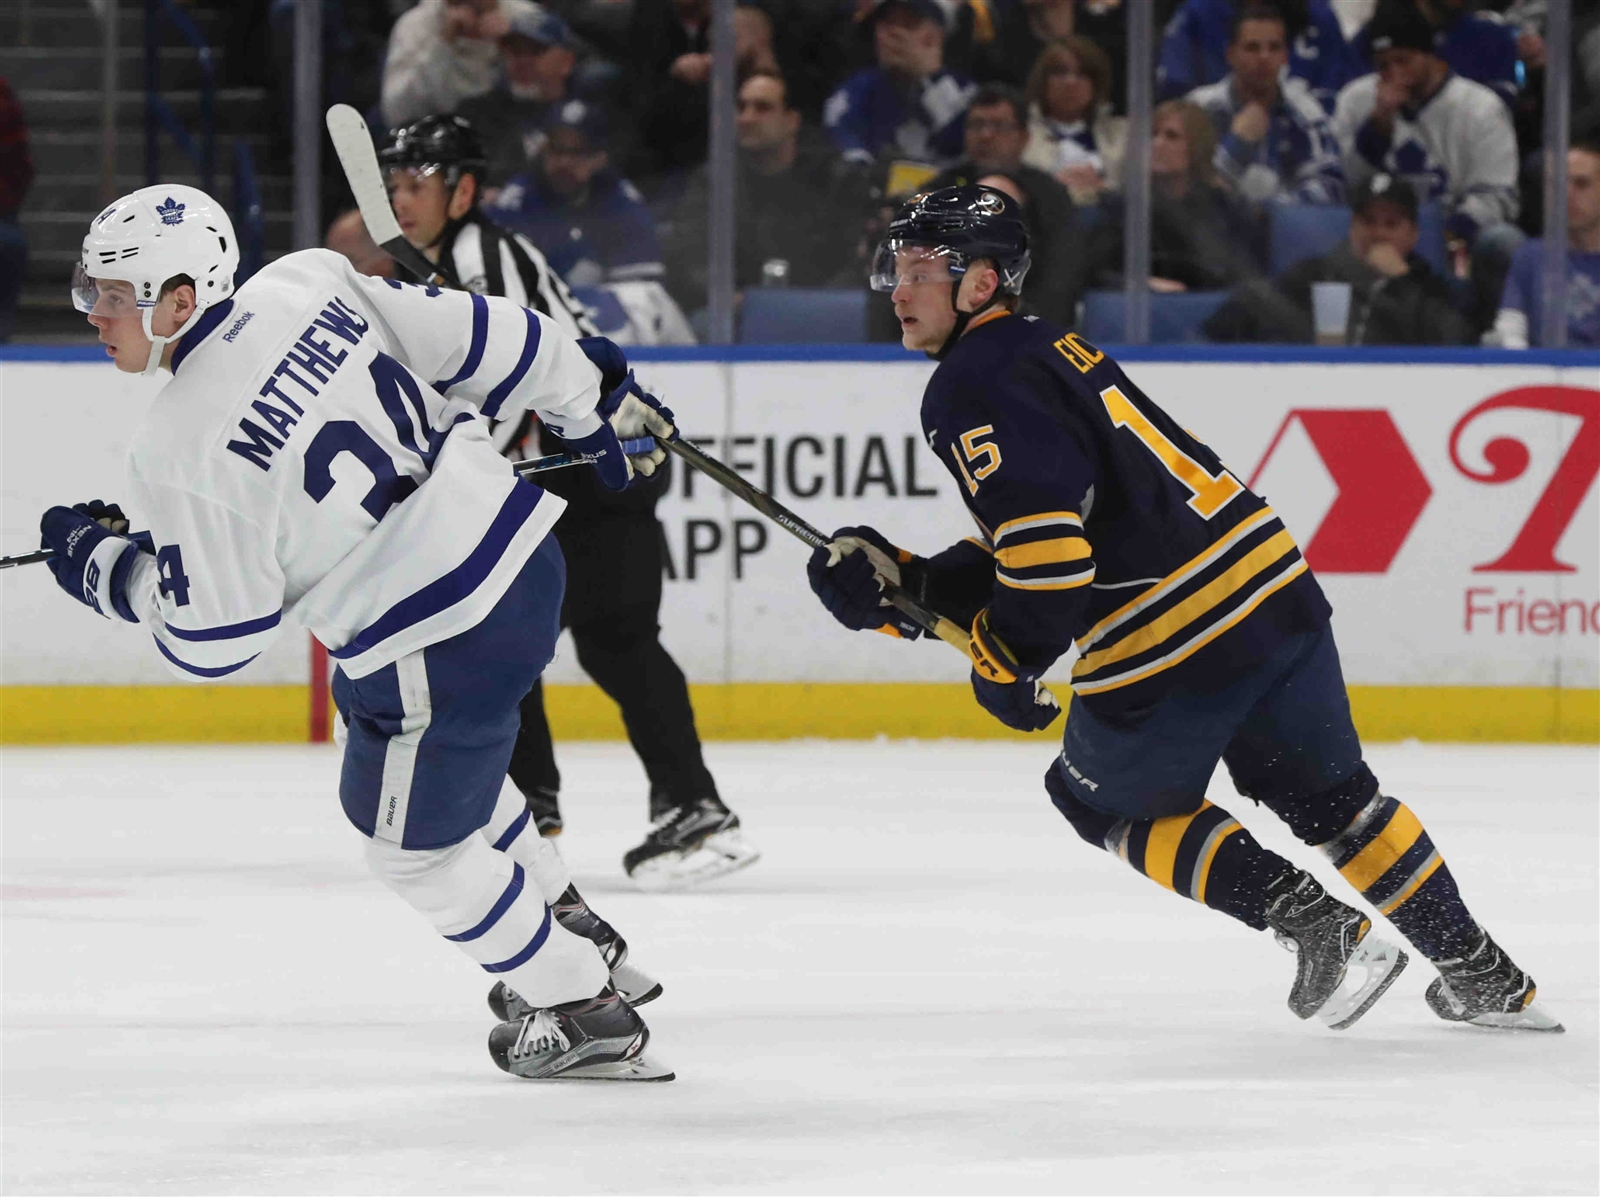 Jack Eichel on Buffalo: 'I've got nothing but great things to say about these fans.' (James P. McCoy/Buffalo News)